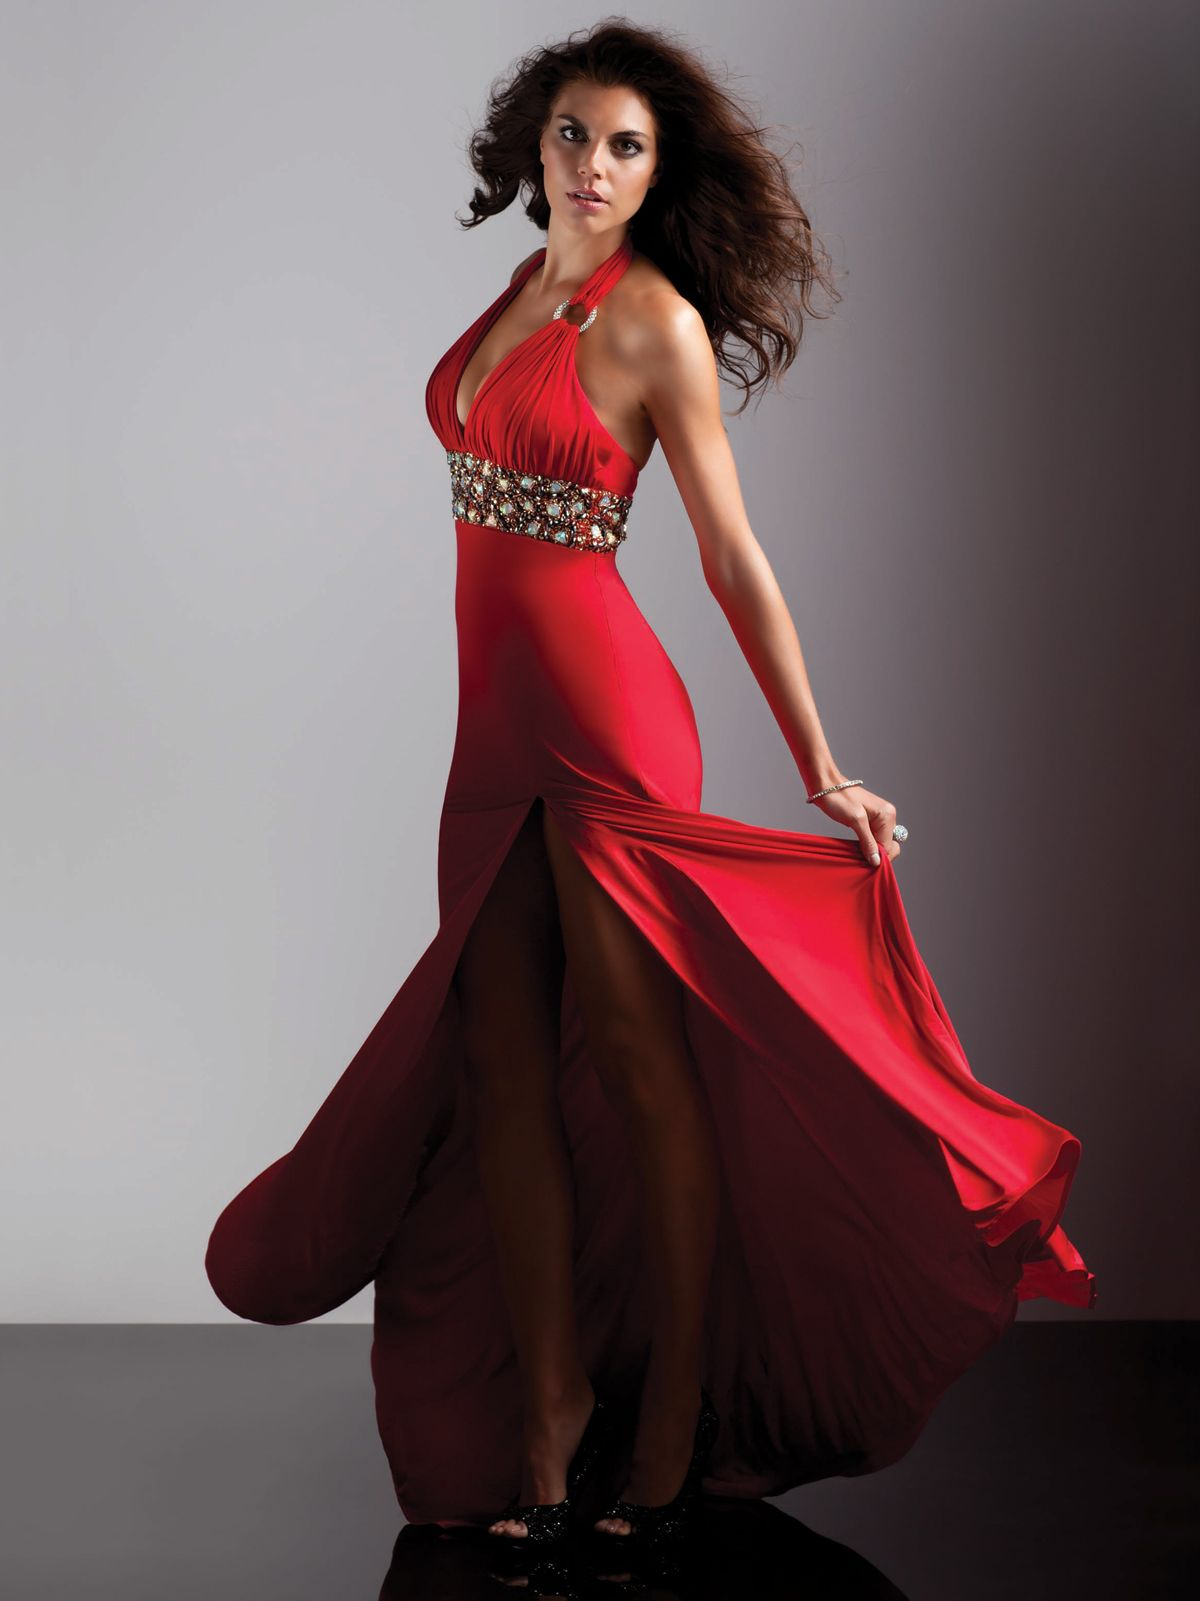 Wear this outstanding prom dress and you will be the envy of the